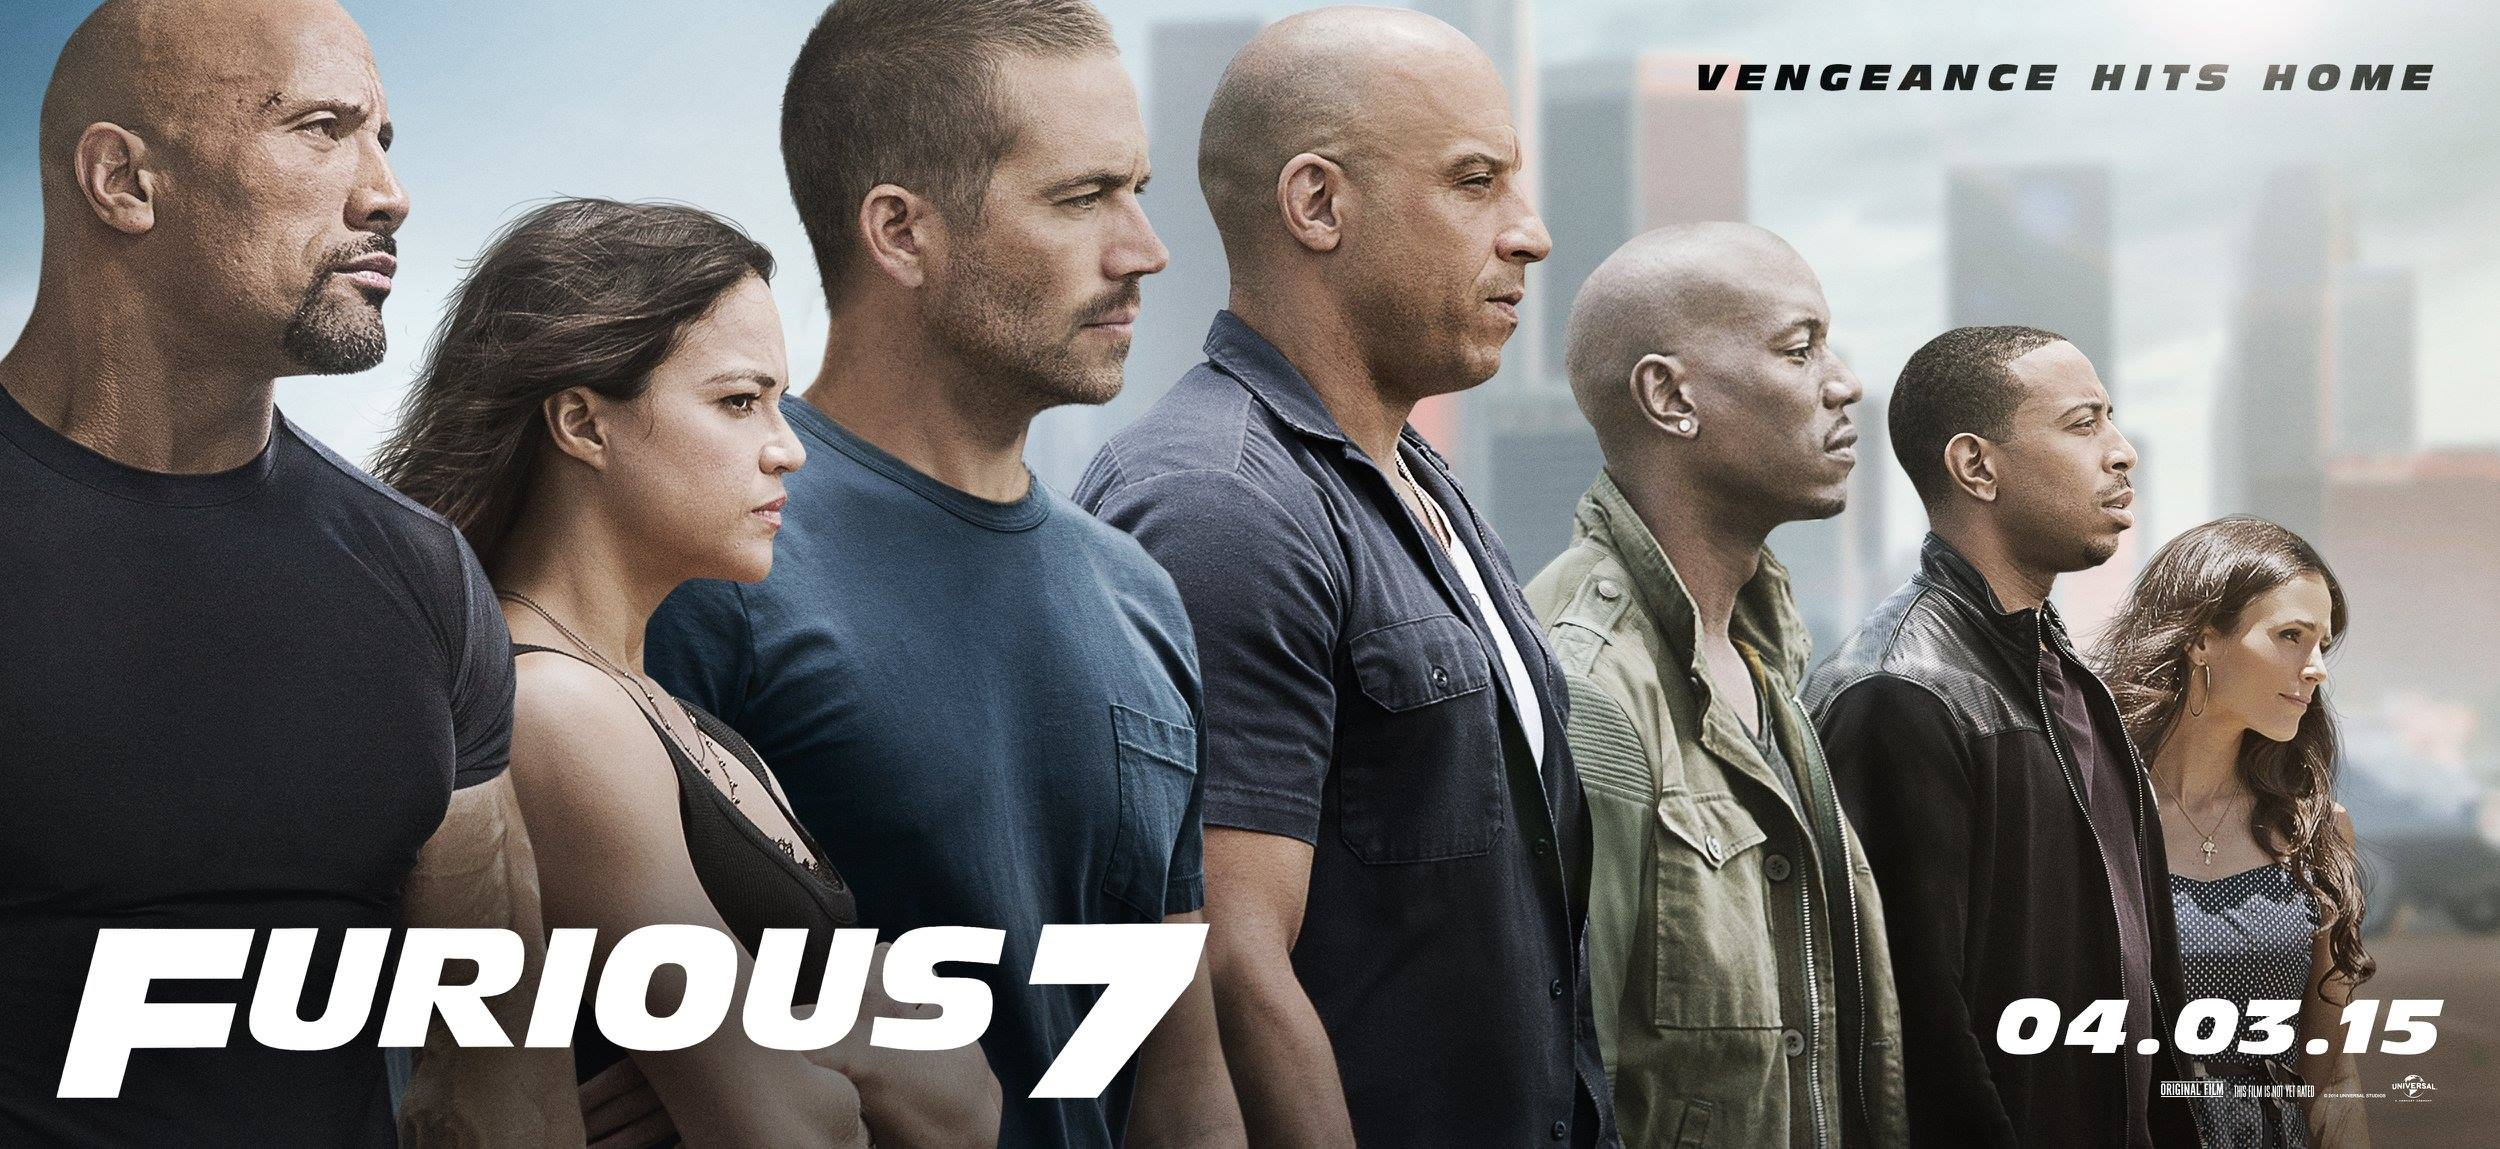 fast and furious 7 rollista